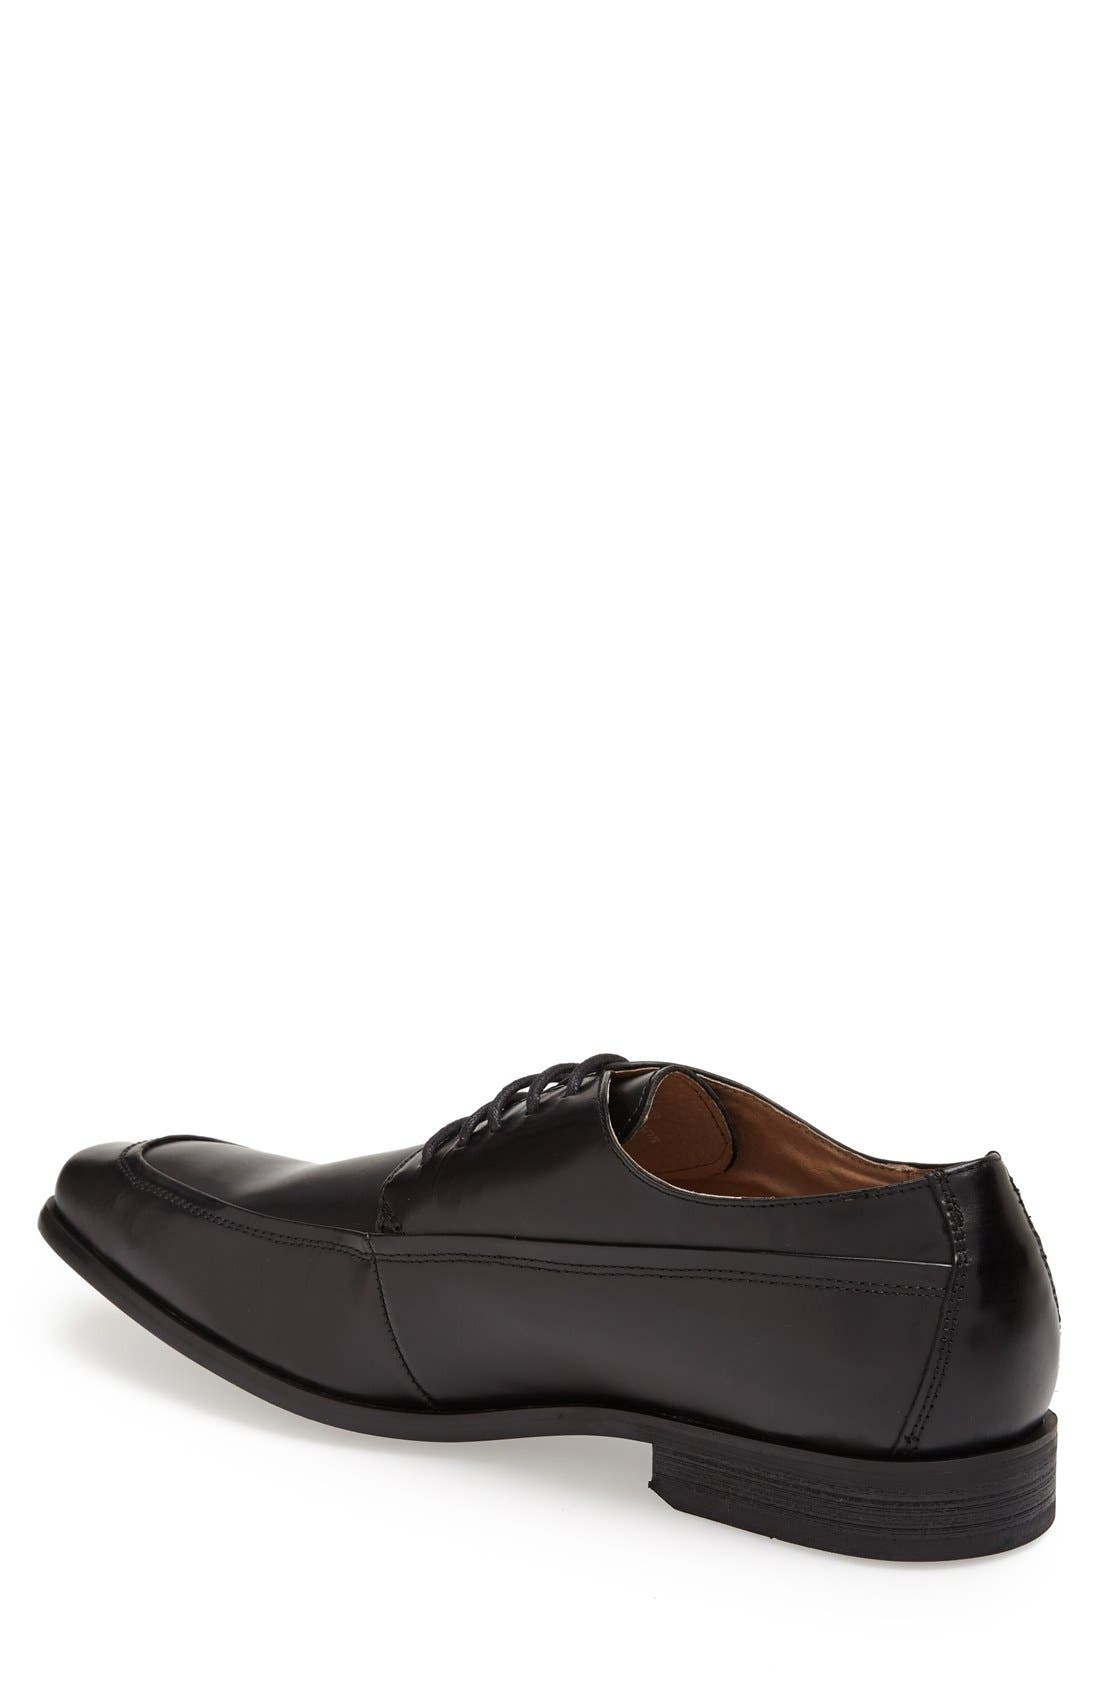 Alternate Image 2  - Robert Wayne 'Velio' Apron Toe Derby (Men)